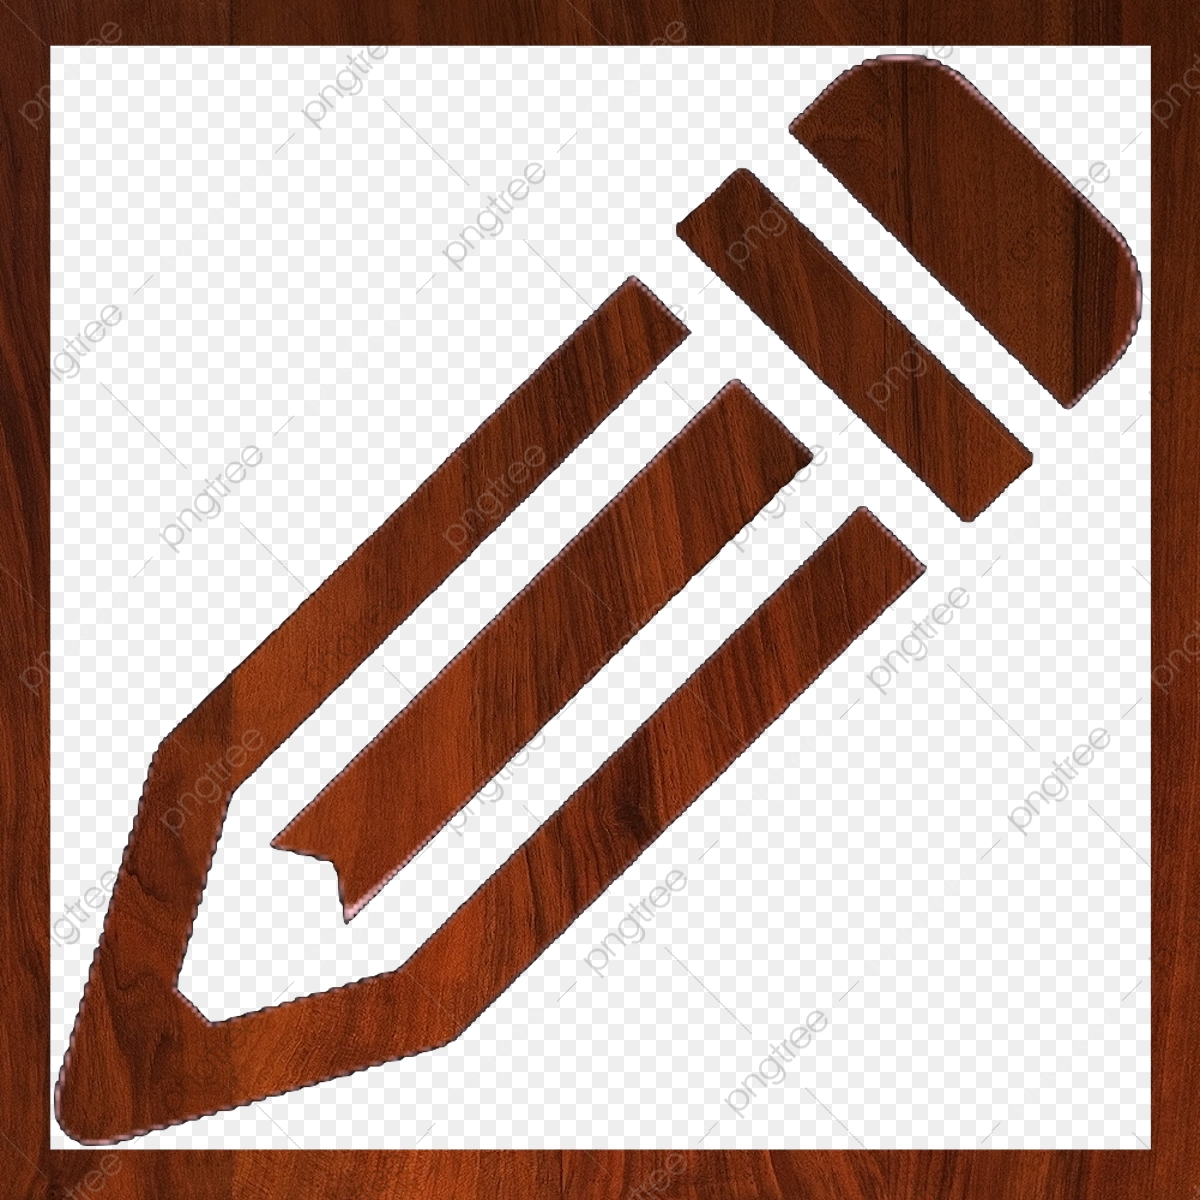 Edit Wood Icon Outline, Edit, Change, Alter PNG Transparent Clipart.